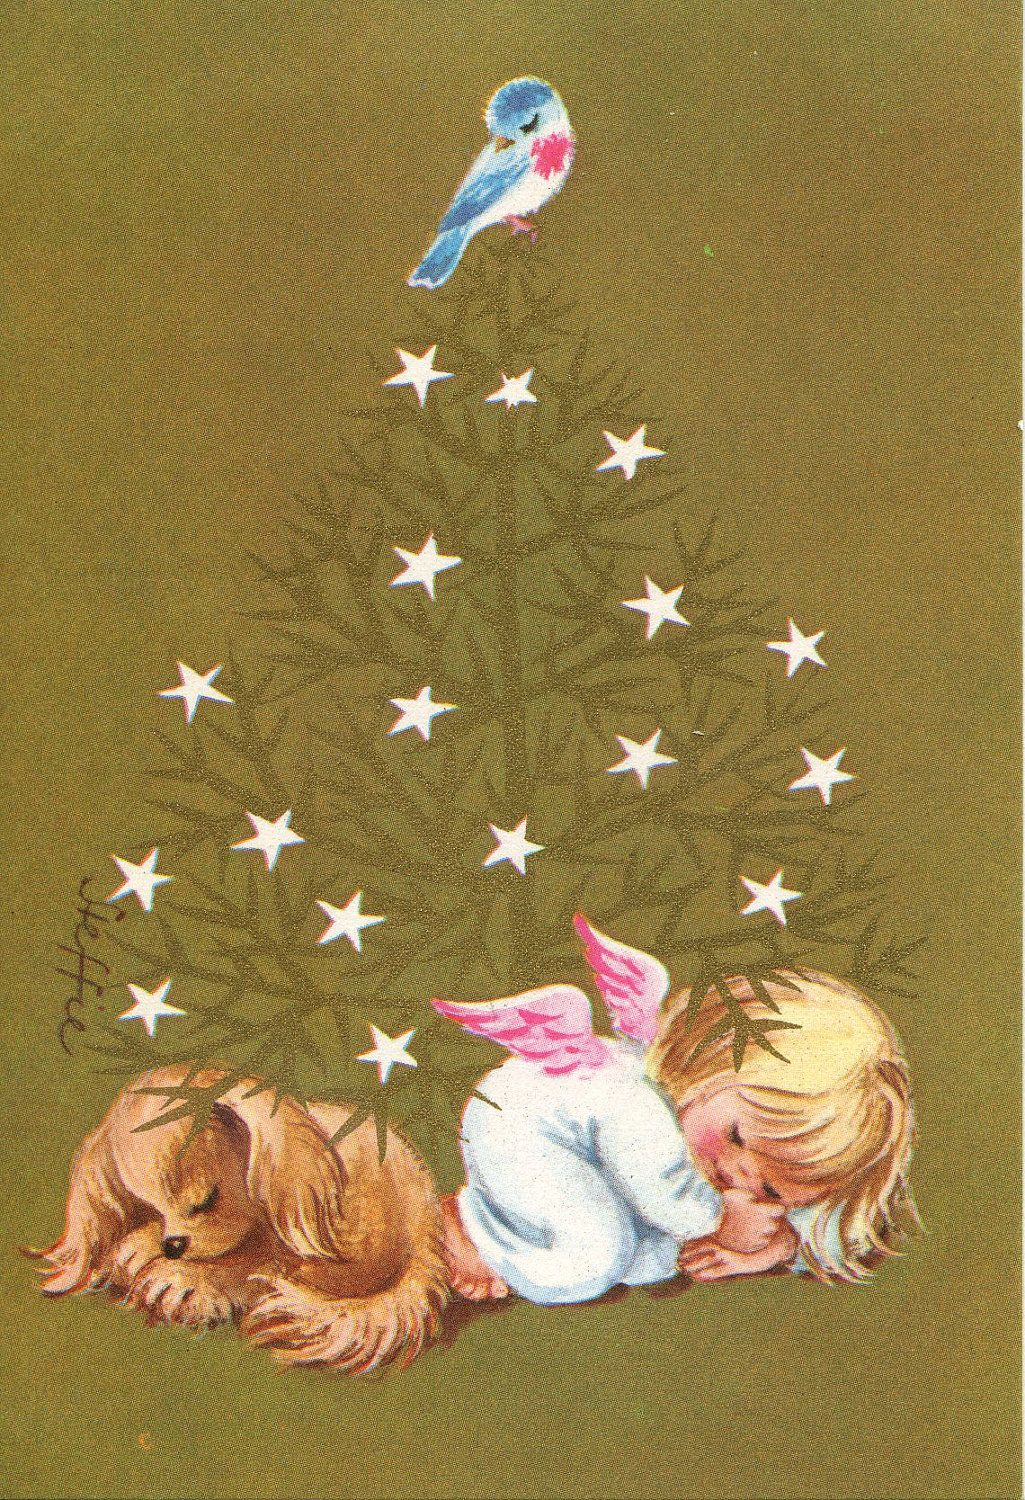 A bluebird watches over a cocker spaniel and a little angel as they sleep under a Christmas tree on this vintage Christmas card.